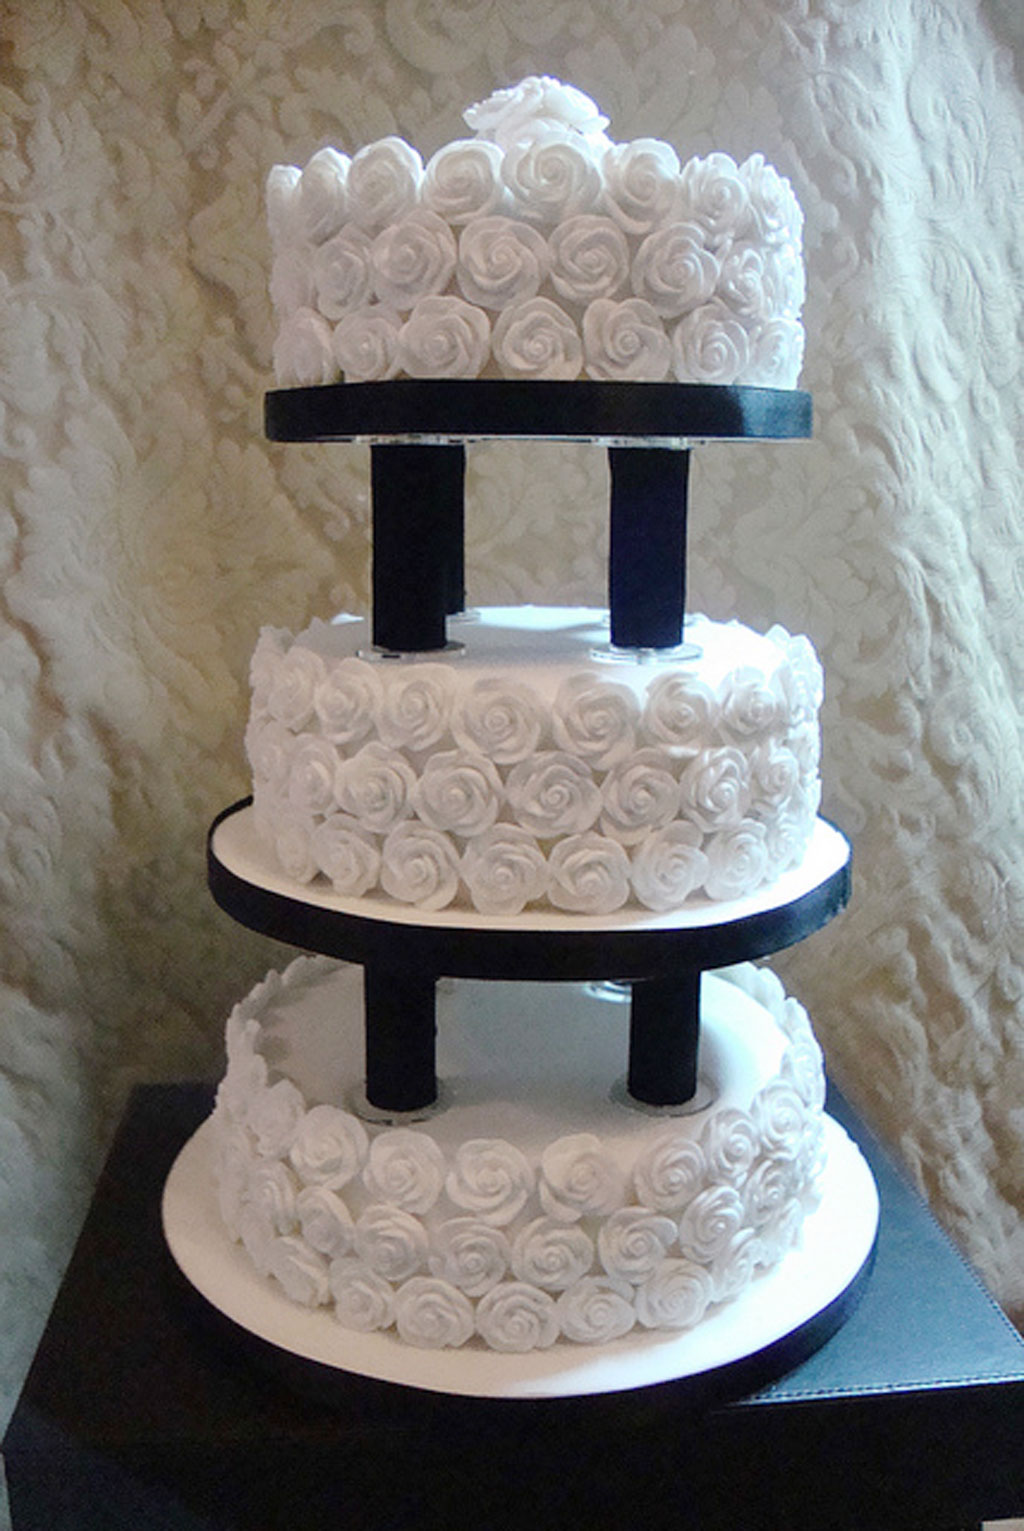 how to use cake pillars for wedding cakes wedding cake pillars and plates wedding cake cake ideas 16190